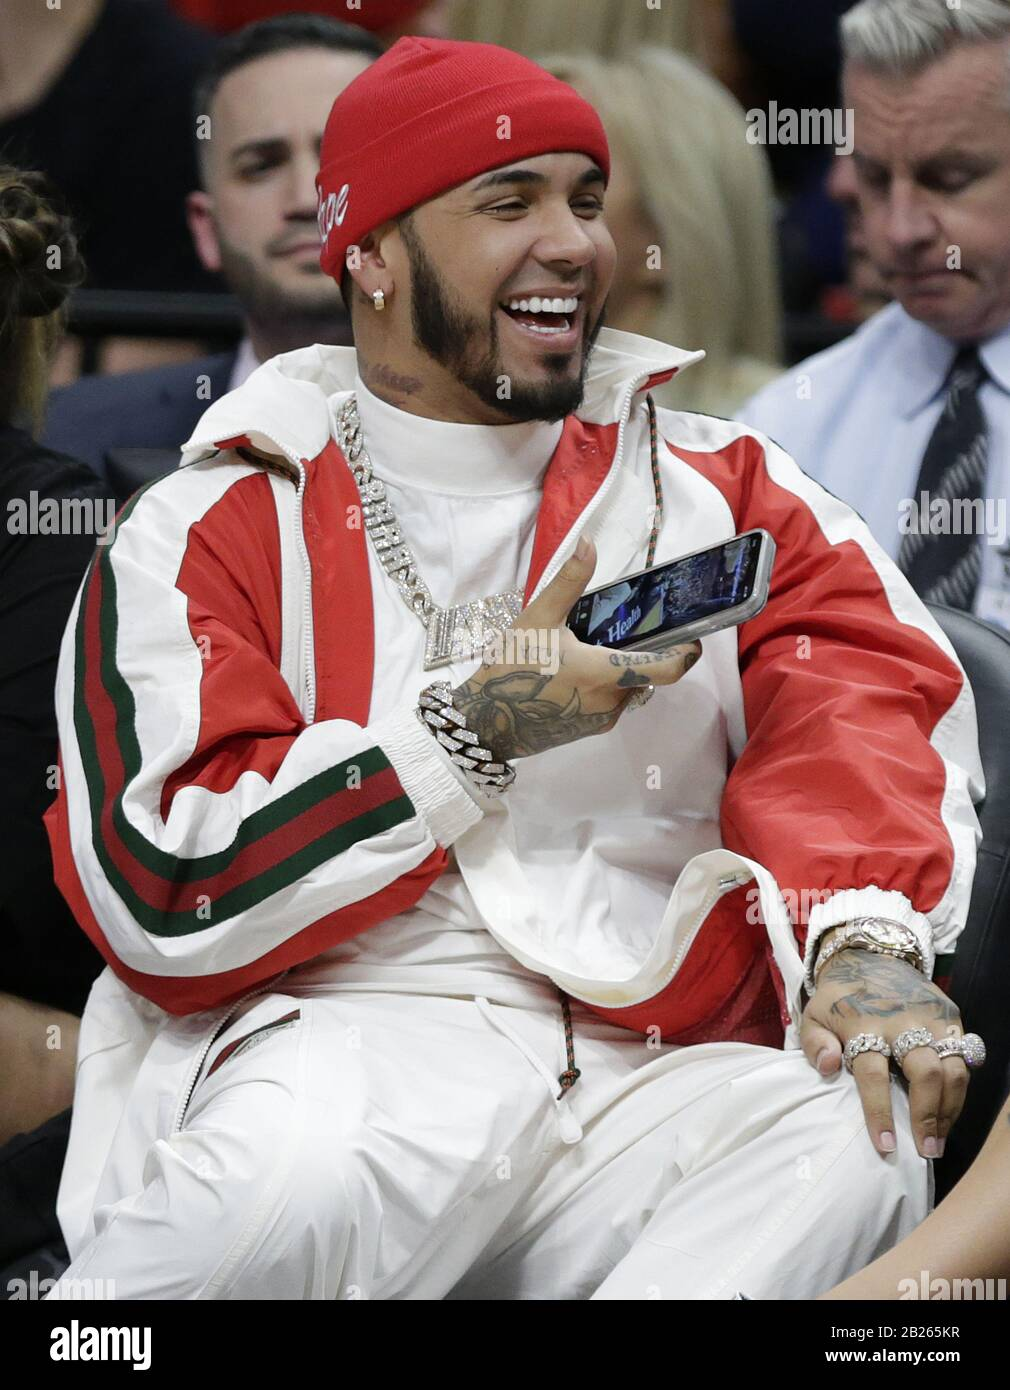 Miami Beach Fl February 28 Anuel Aa Is A Puerto Rican Rapper And Singer Seen Court Side At The Miami Heat Game On February 28 2020 In Miami Florida People Anuel